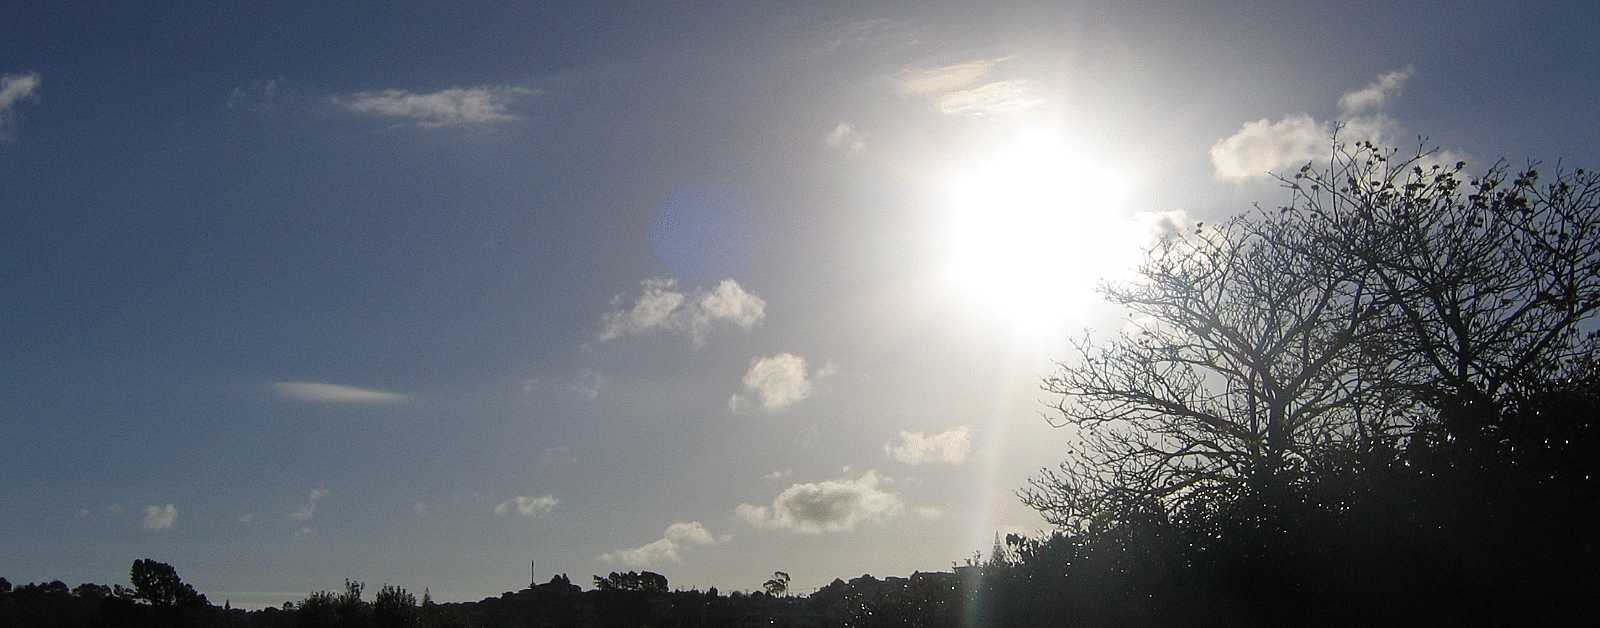 sky, location of climate